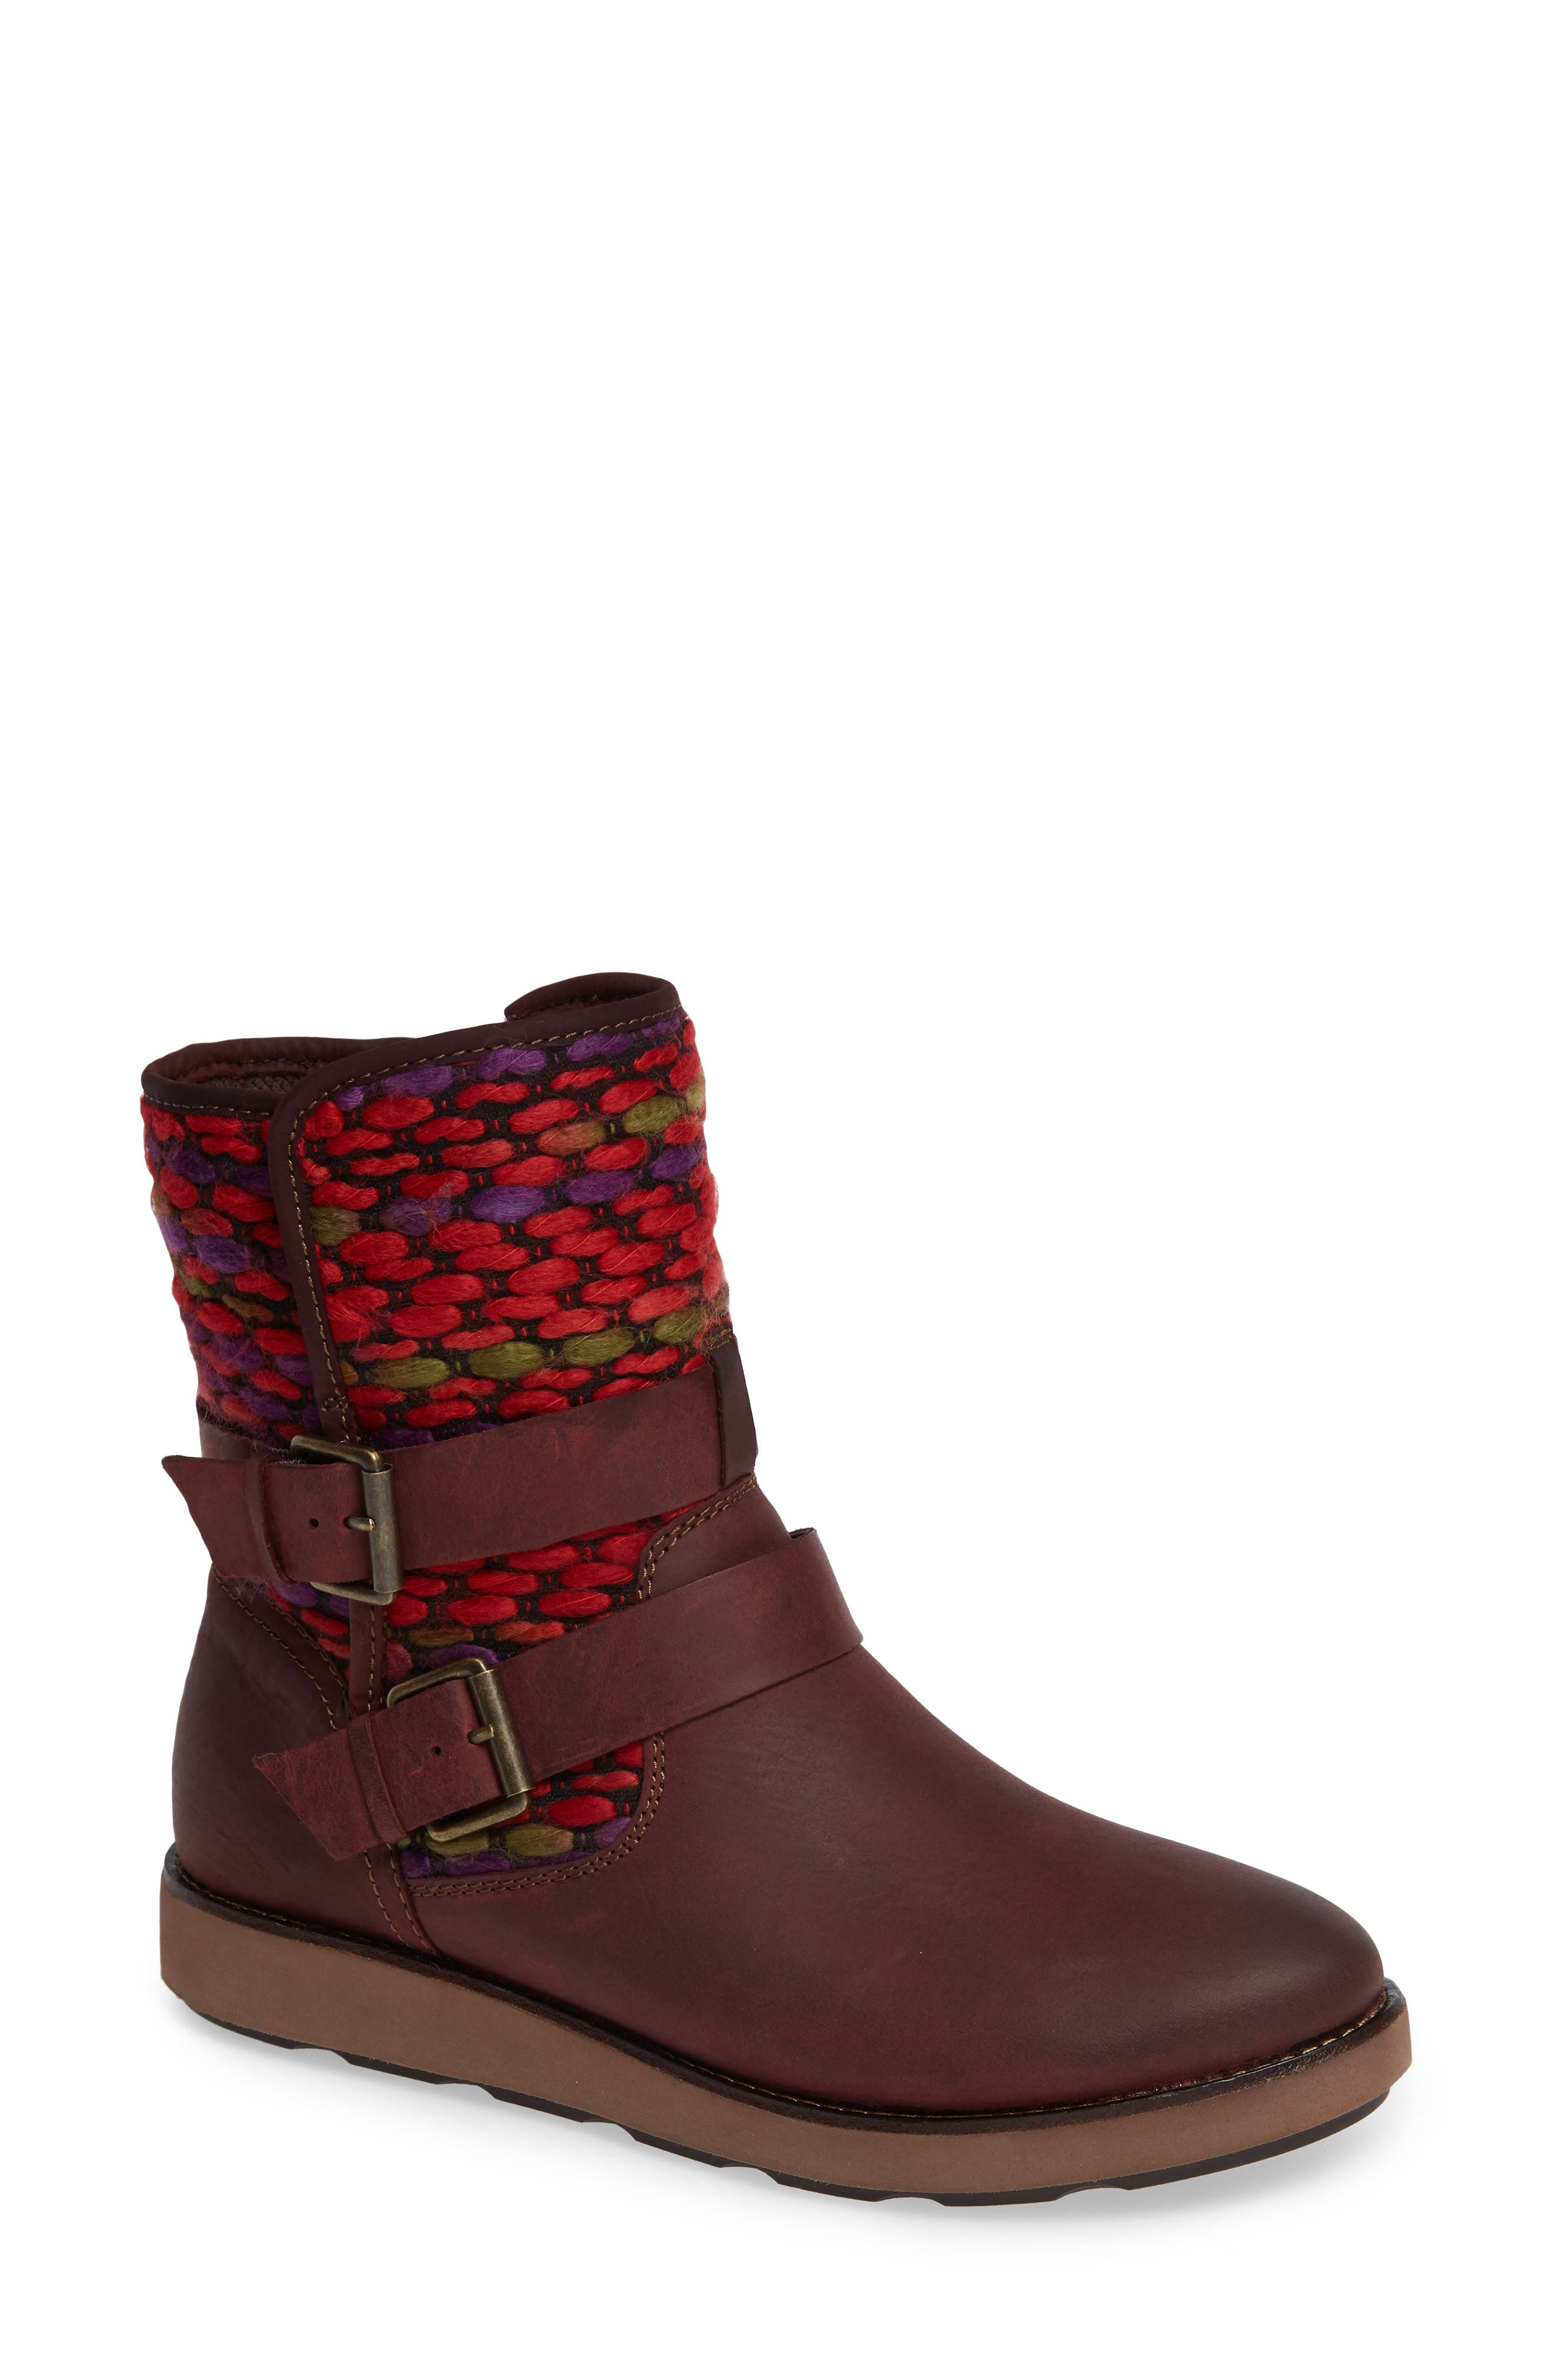 Bionica Nordic Bootie- Red